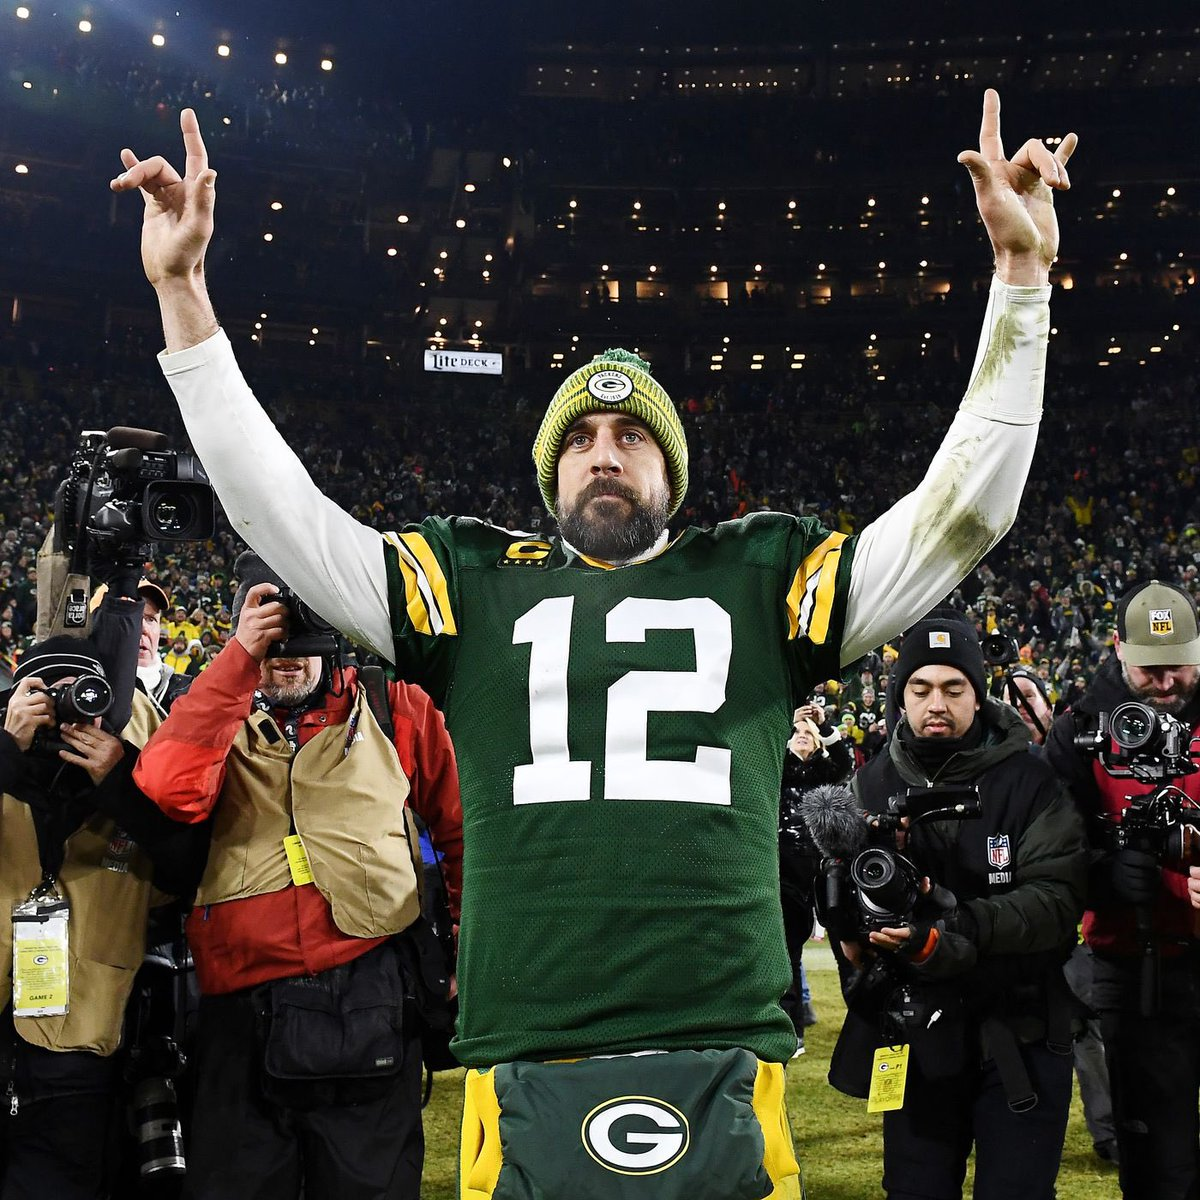 #ThankYouAaron and thank you @PatMcAfeeShow for hosting a great show all year. Love the authenticity. Can't wait for the sequel next football season. #GoPackGo @AaronRodgers12